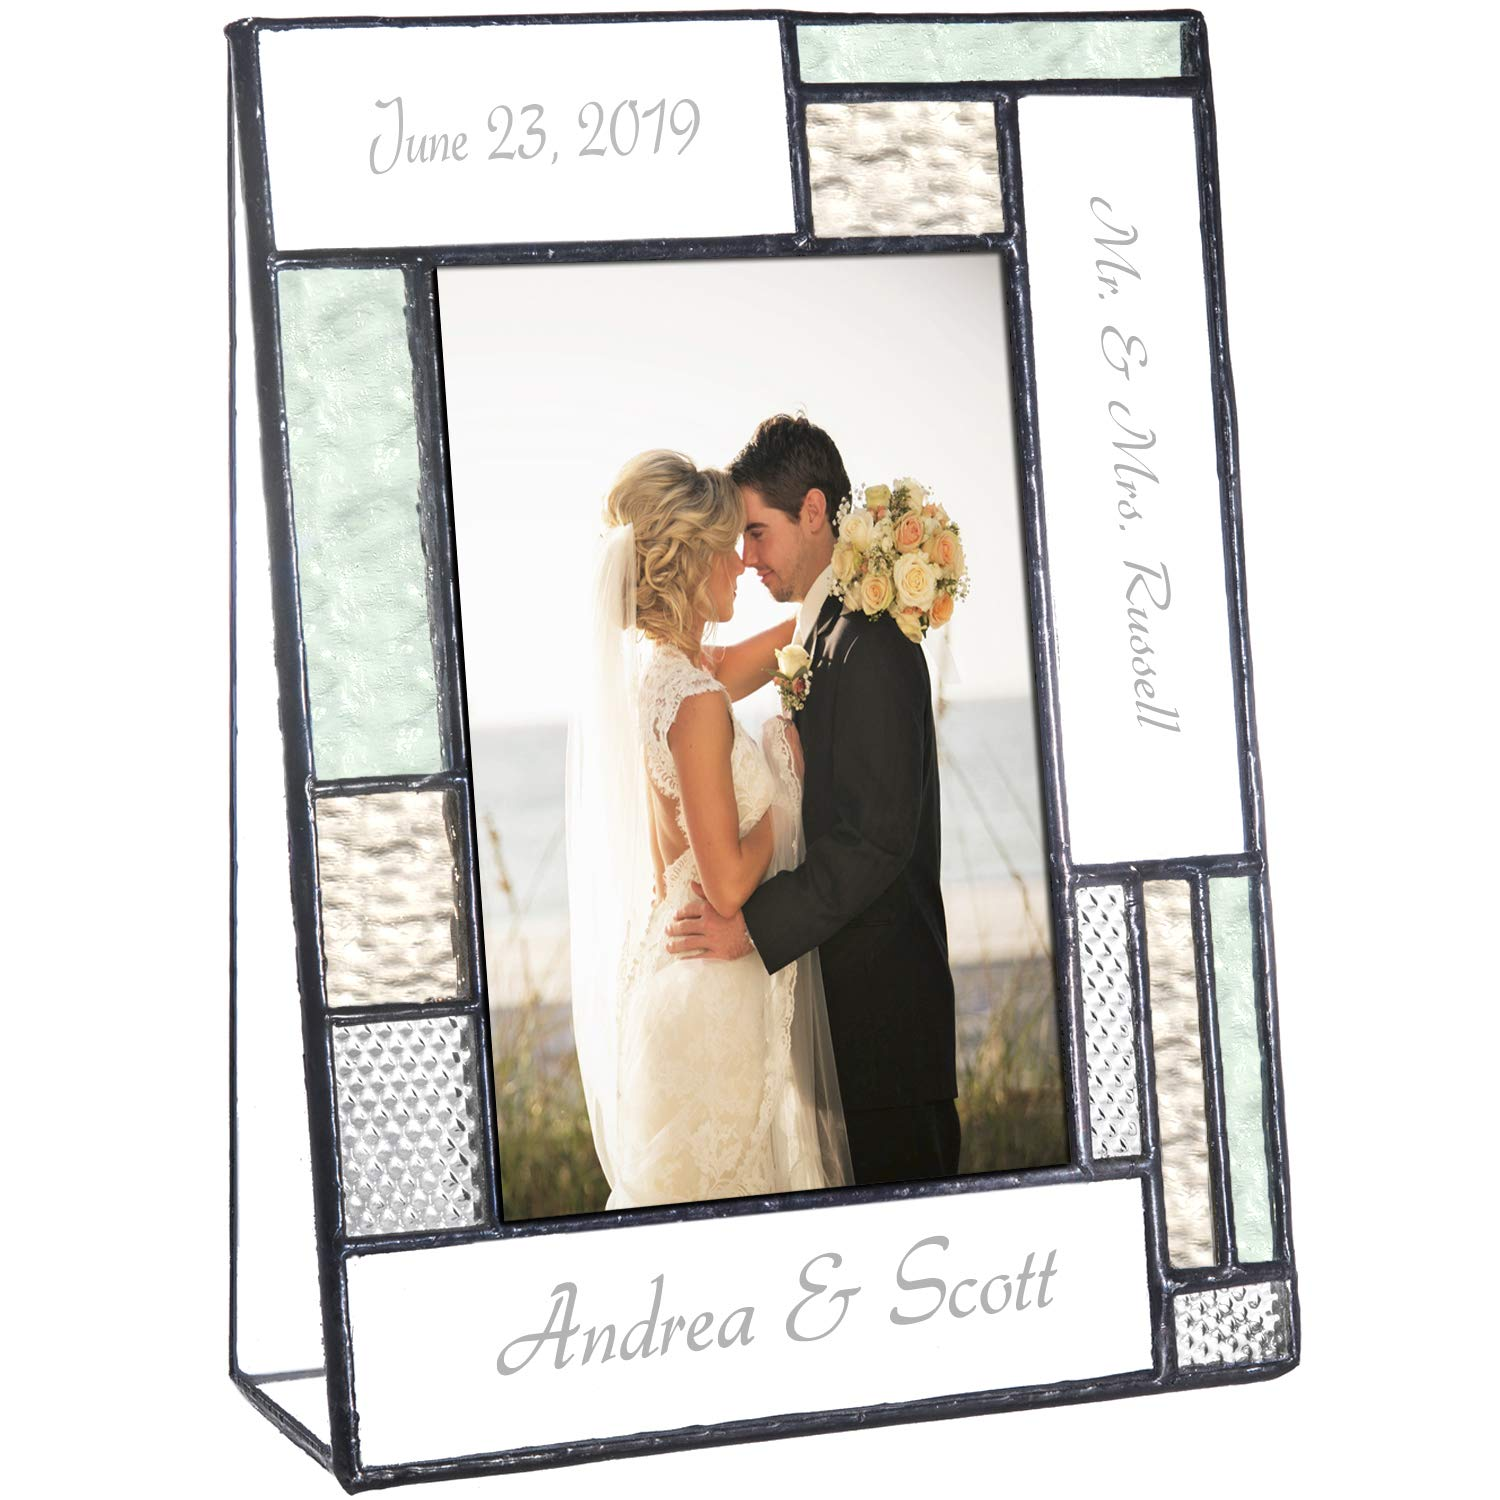 Wedding Picture Frame Personalized Gift for Couple Engraved Green Yellow Glass Table Top 4x6 Vertical Photo Engagement Keepsake J Devlin Pic 430-46V EP619